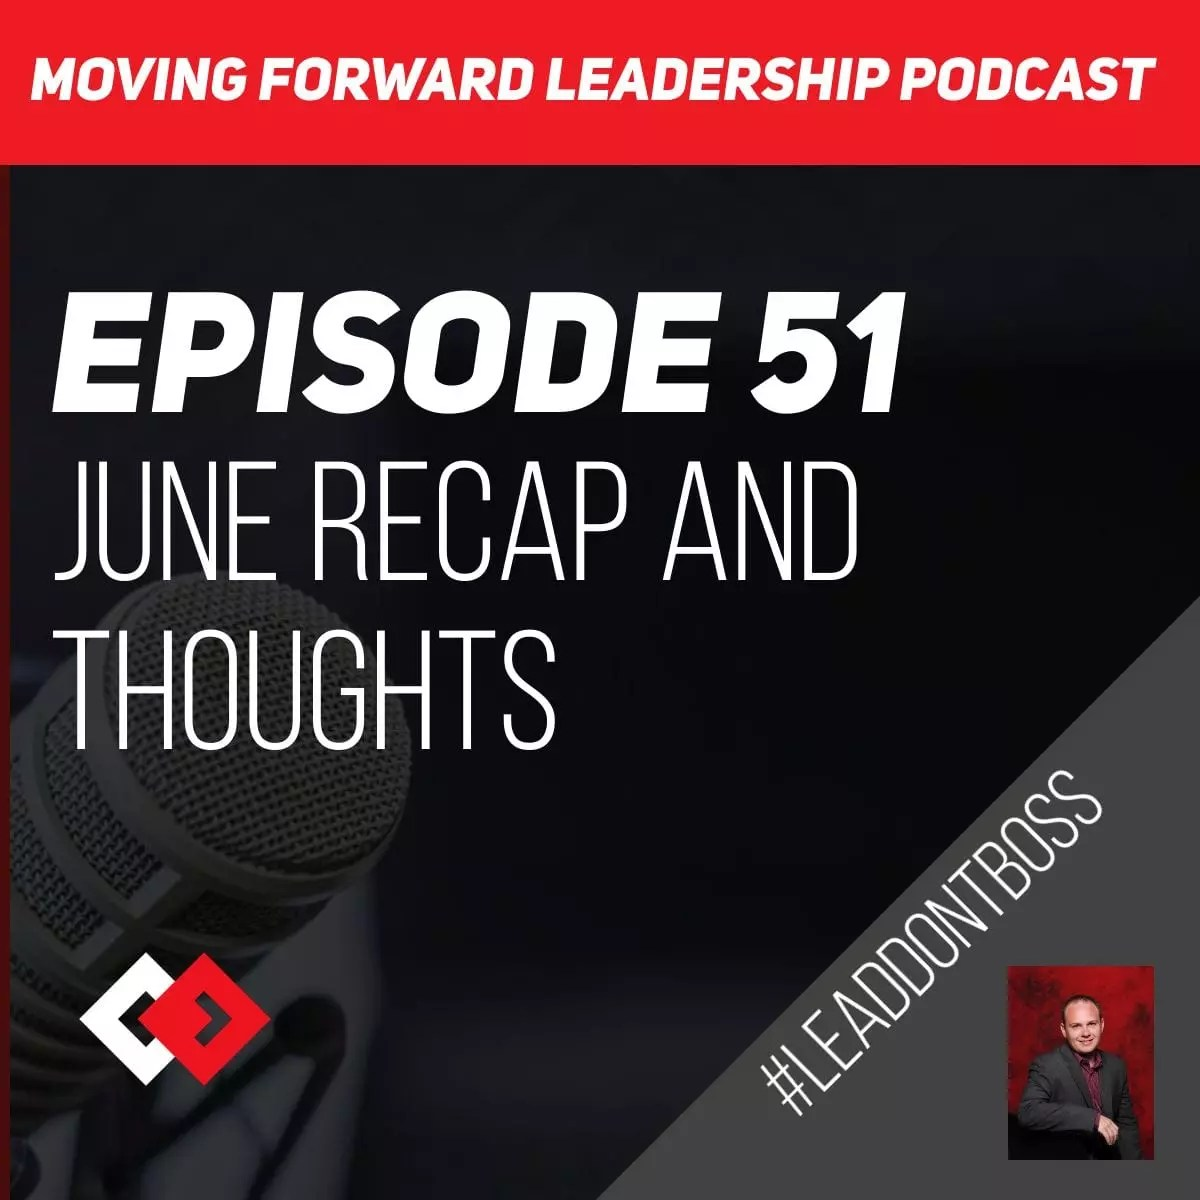 June Recap and Thoughts   Episode 51